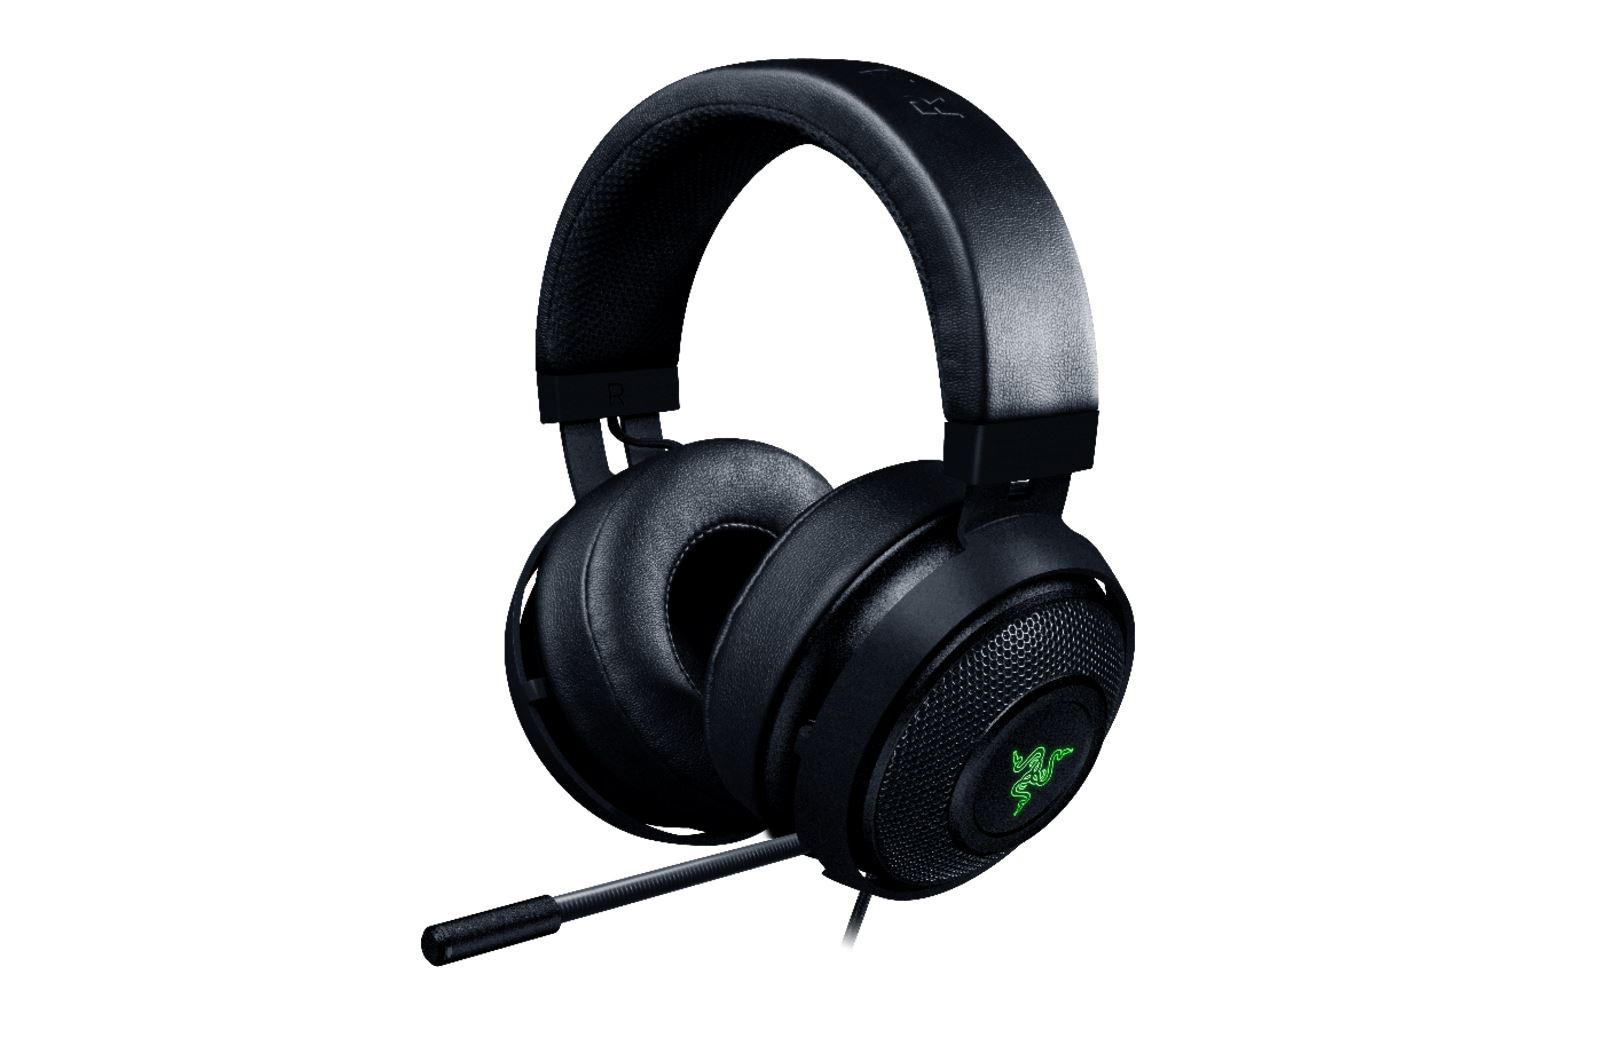 The 7.1 V2 gives Kraken serious surround-sound capabilities.